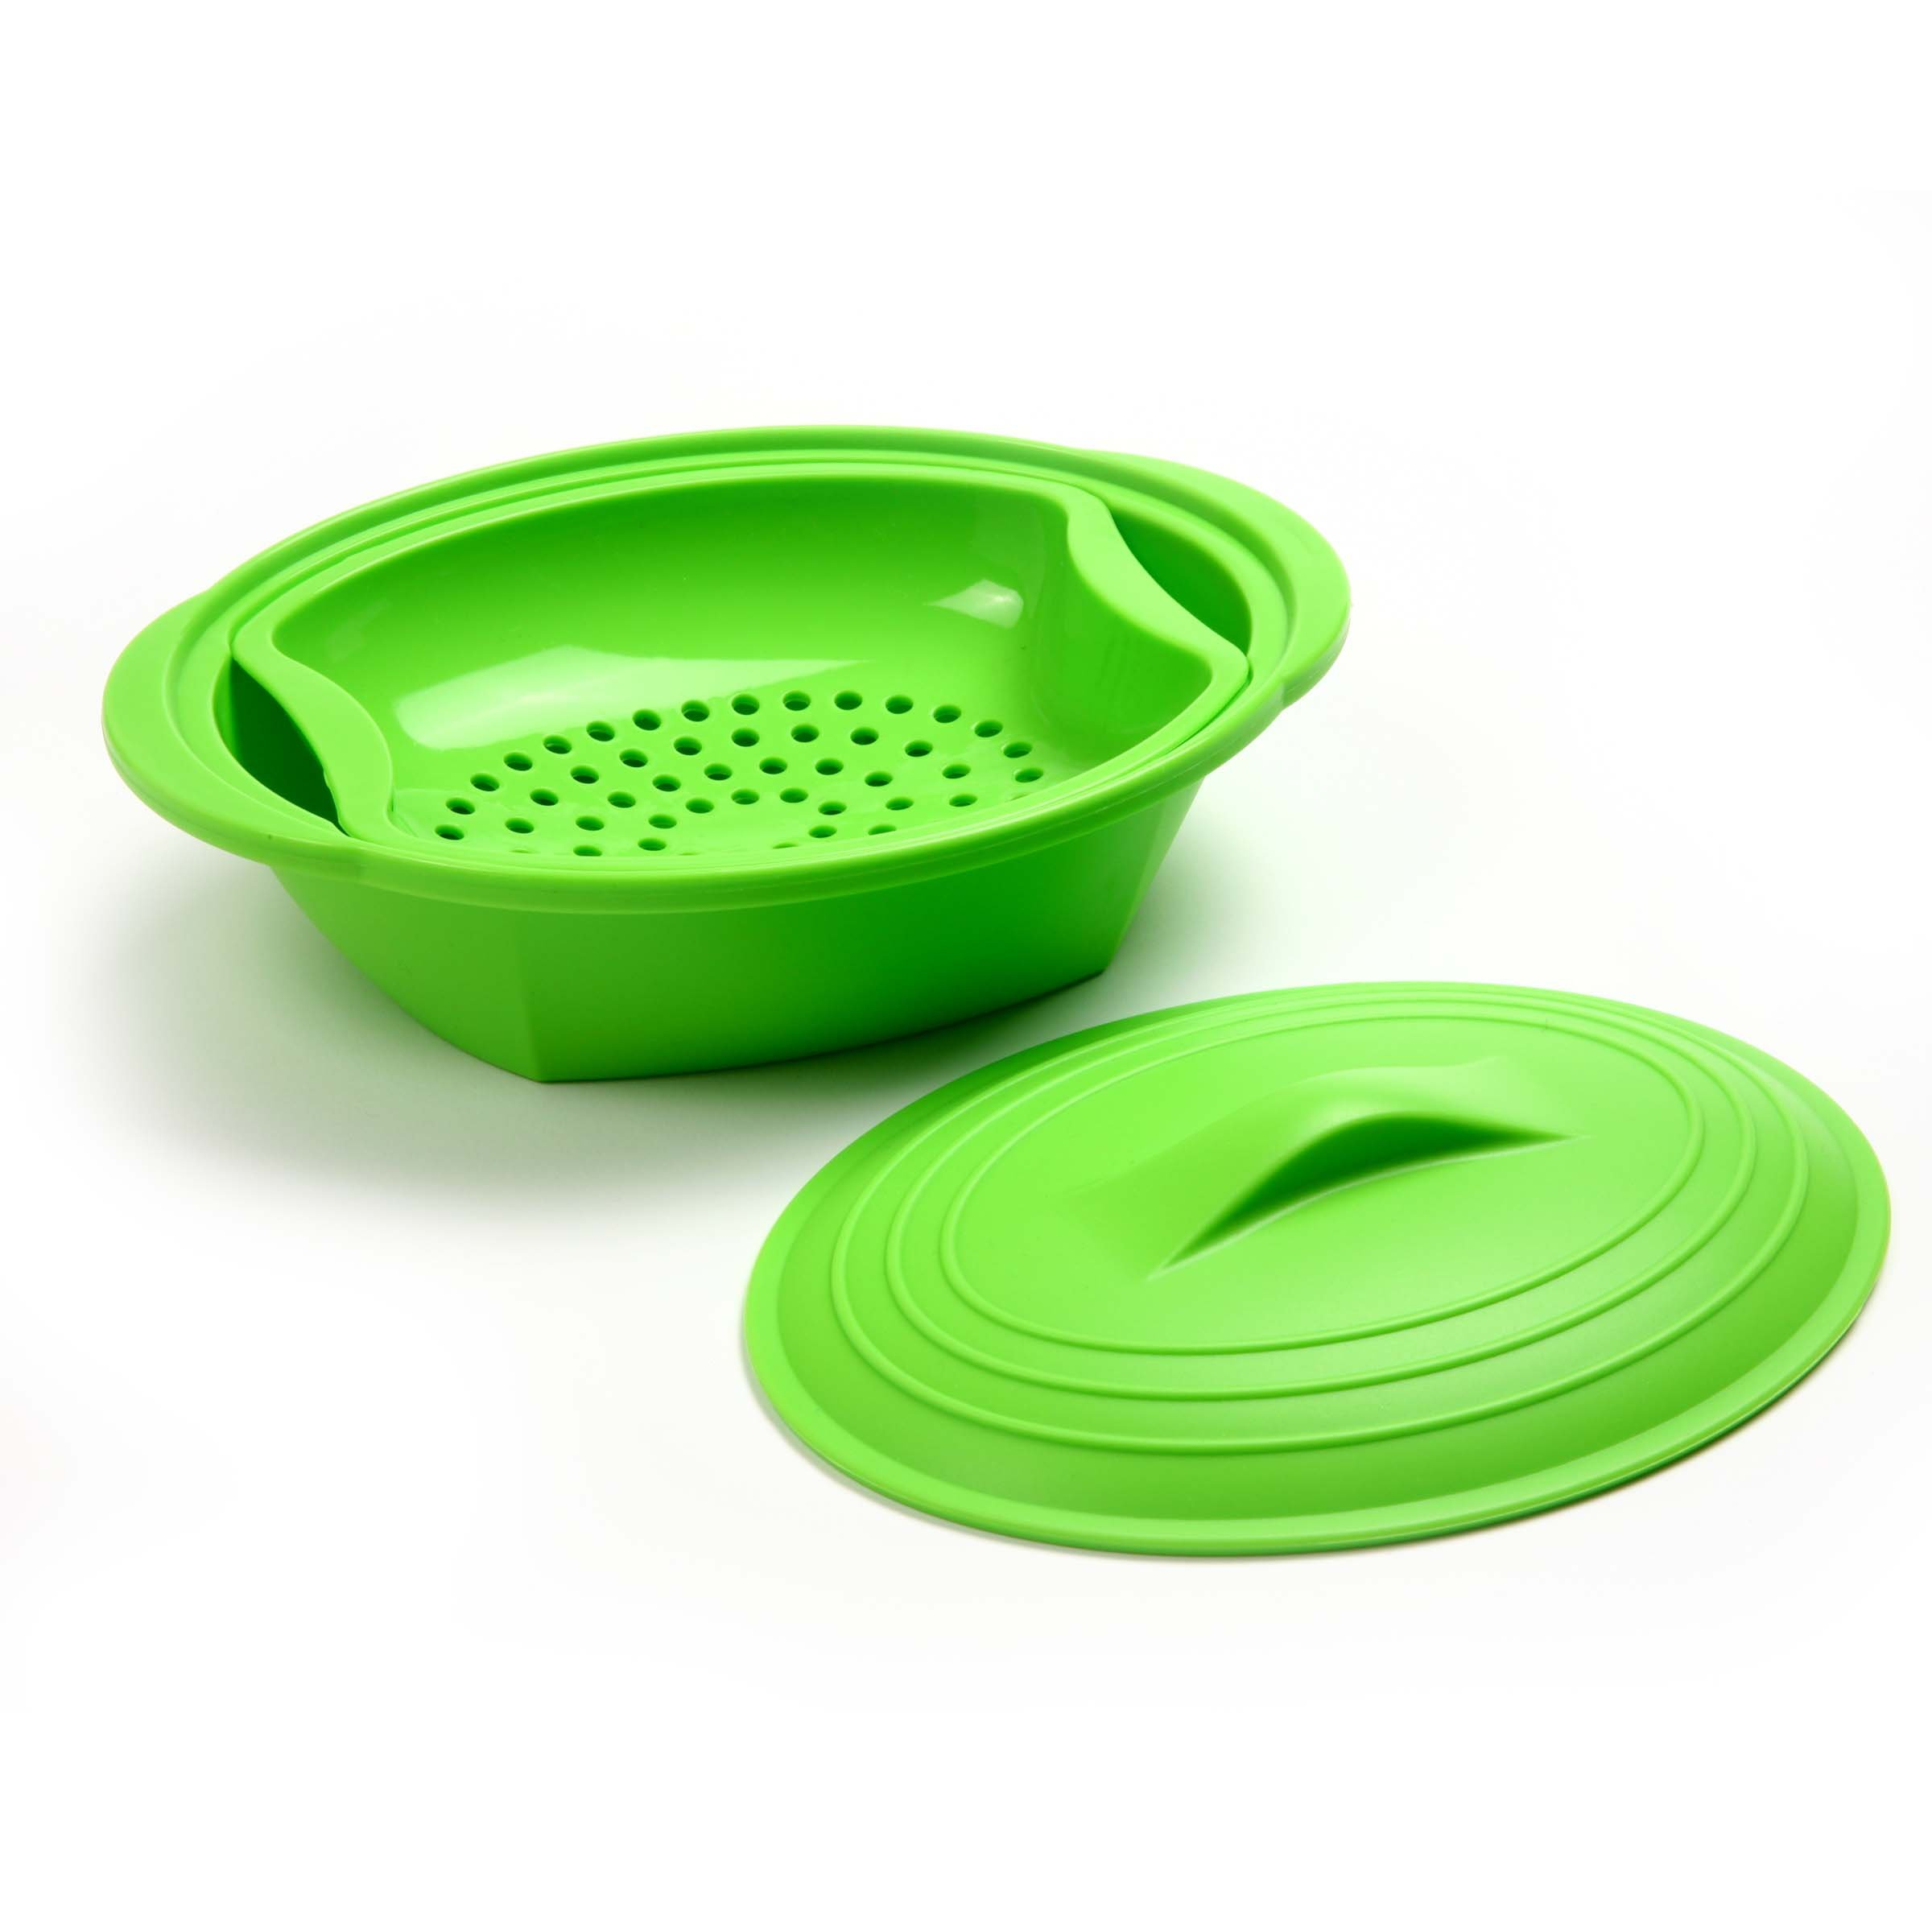 Norpro Silicone Steamer with Insert, Green